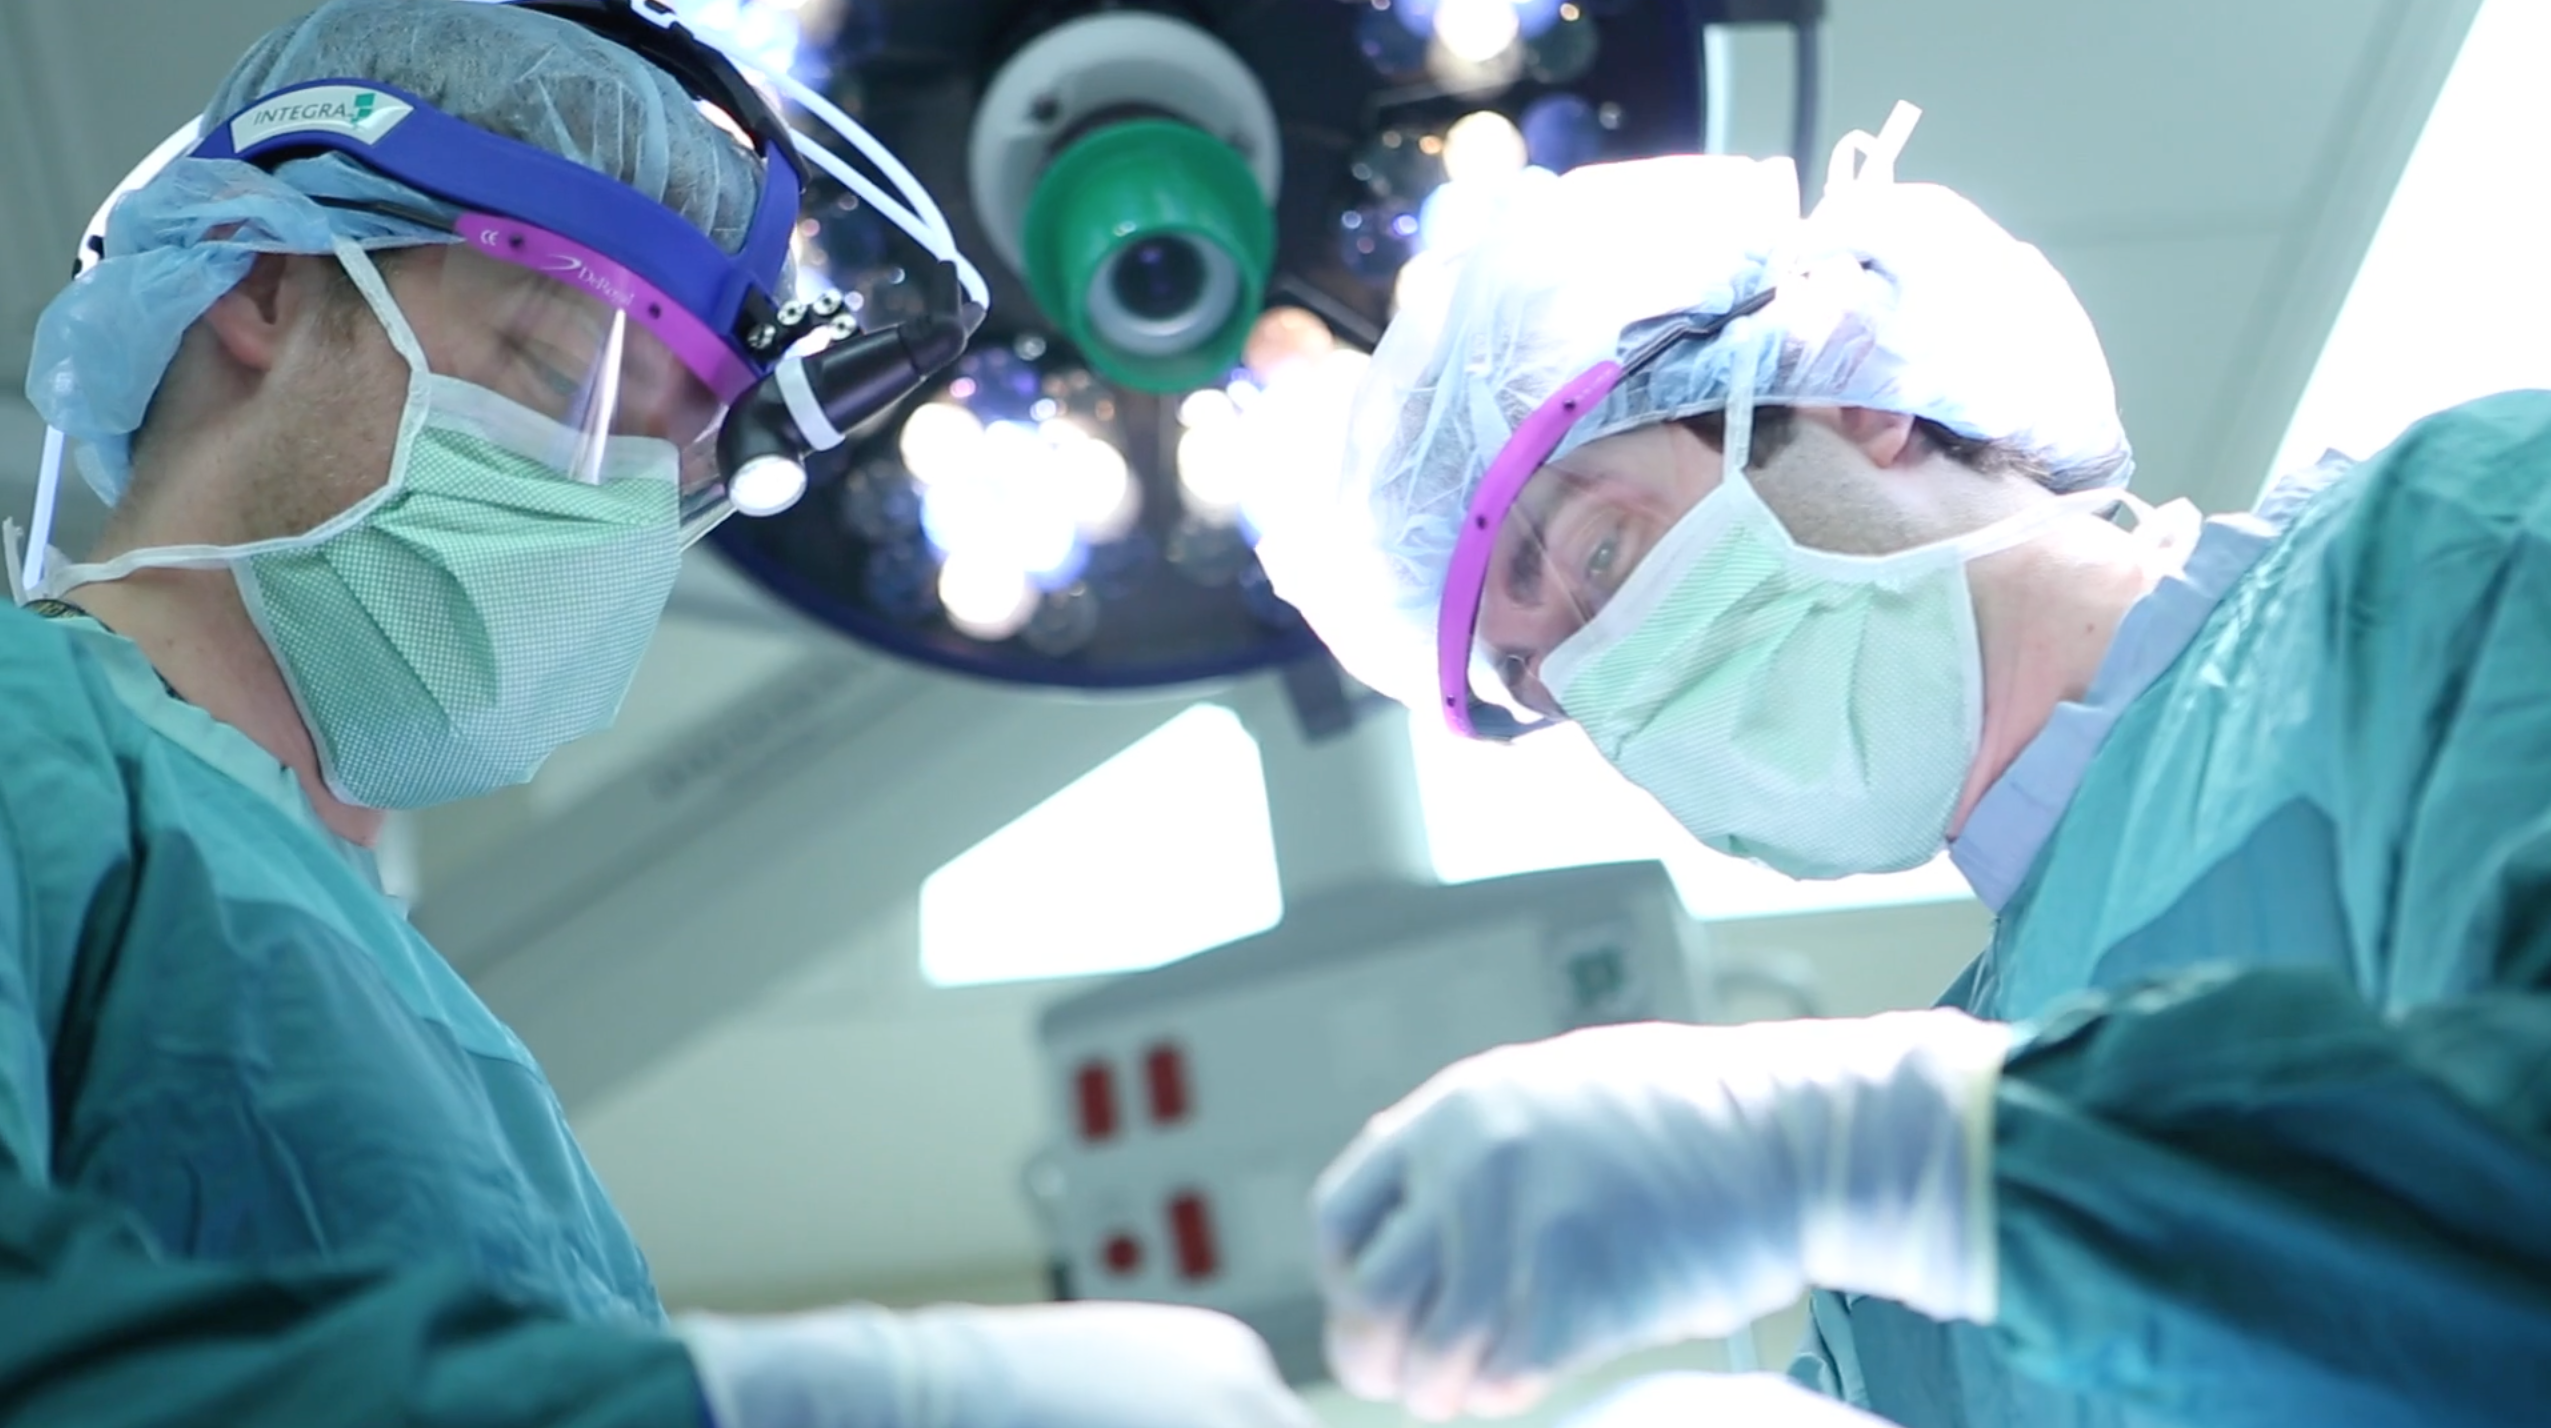 Surgical team members in the operating room